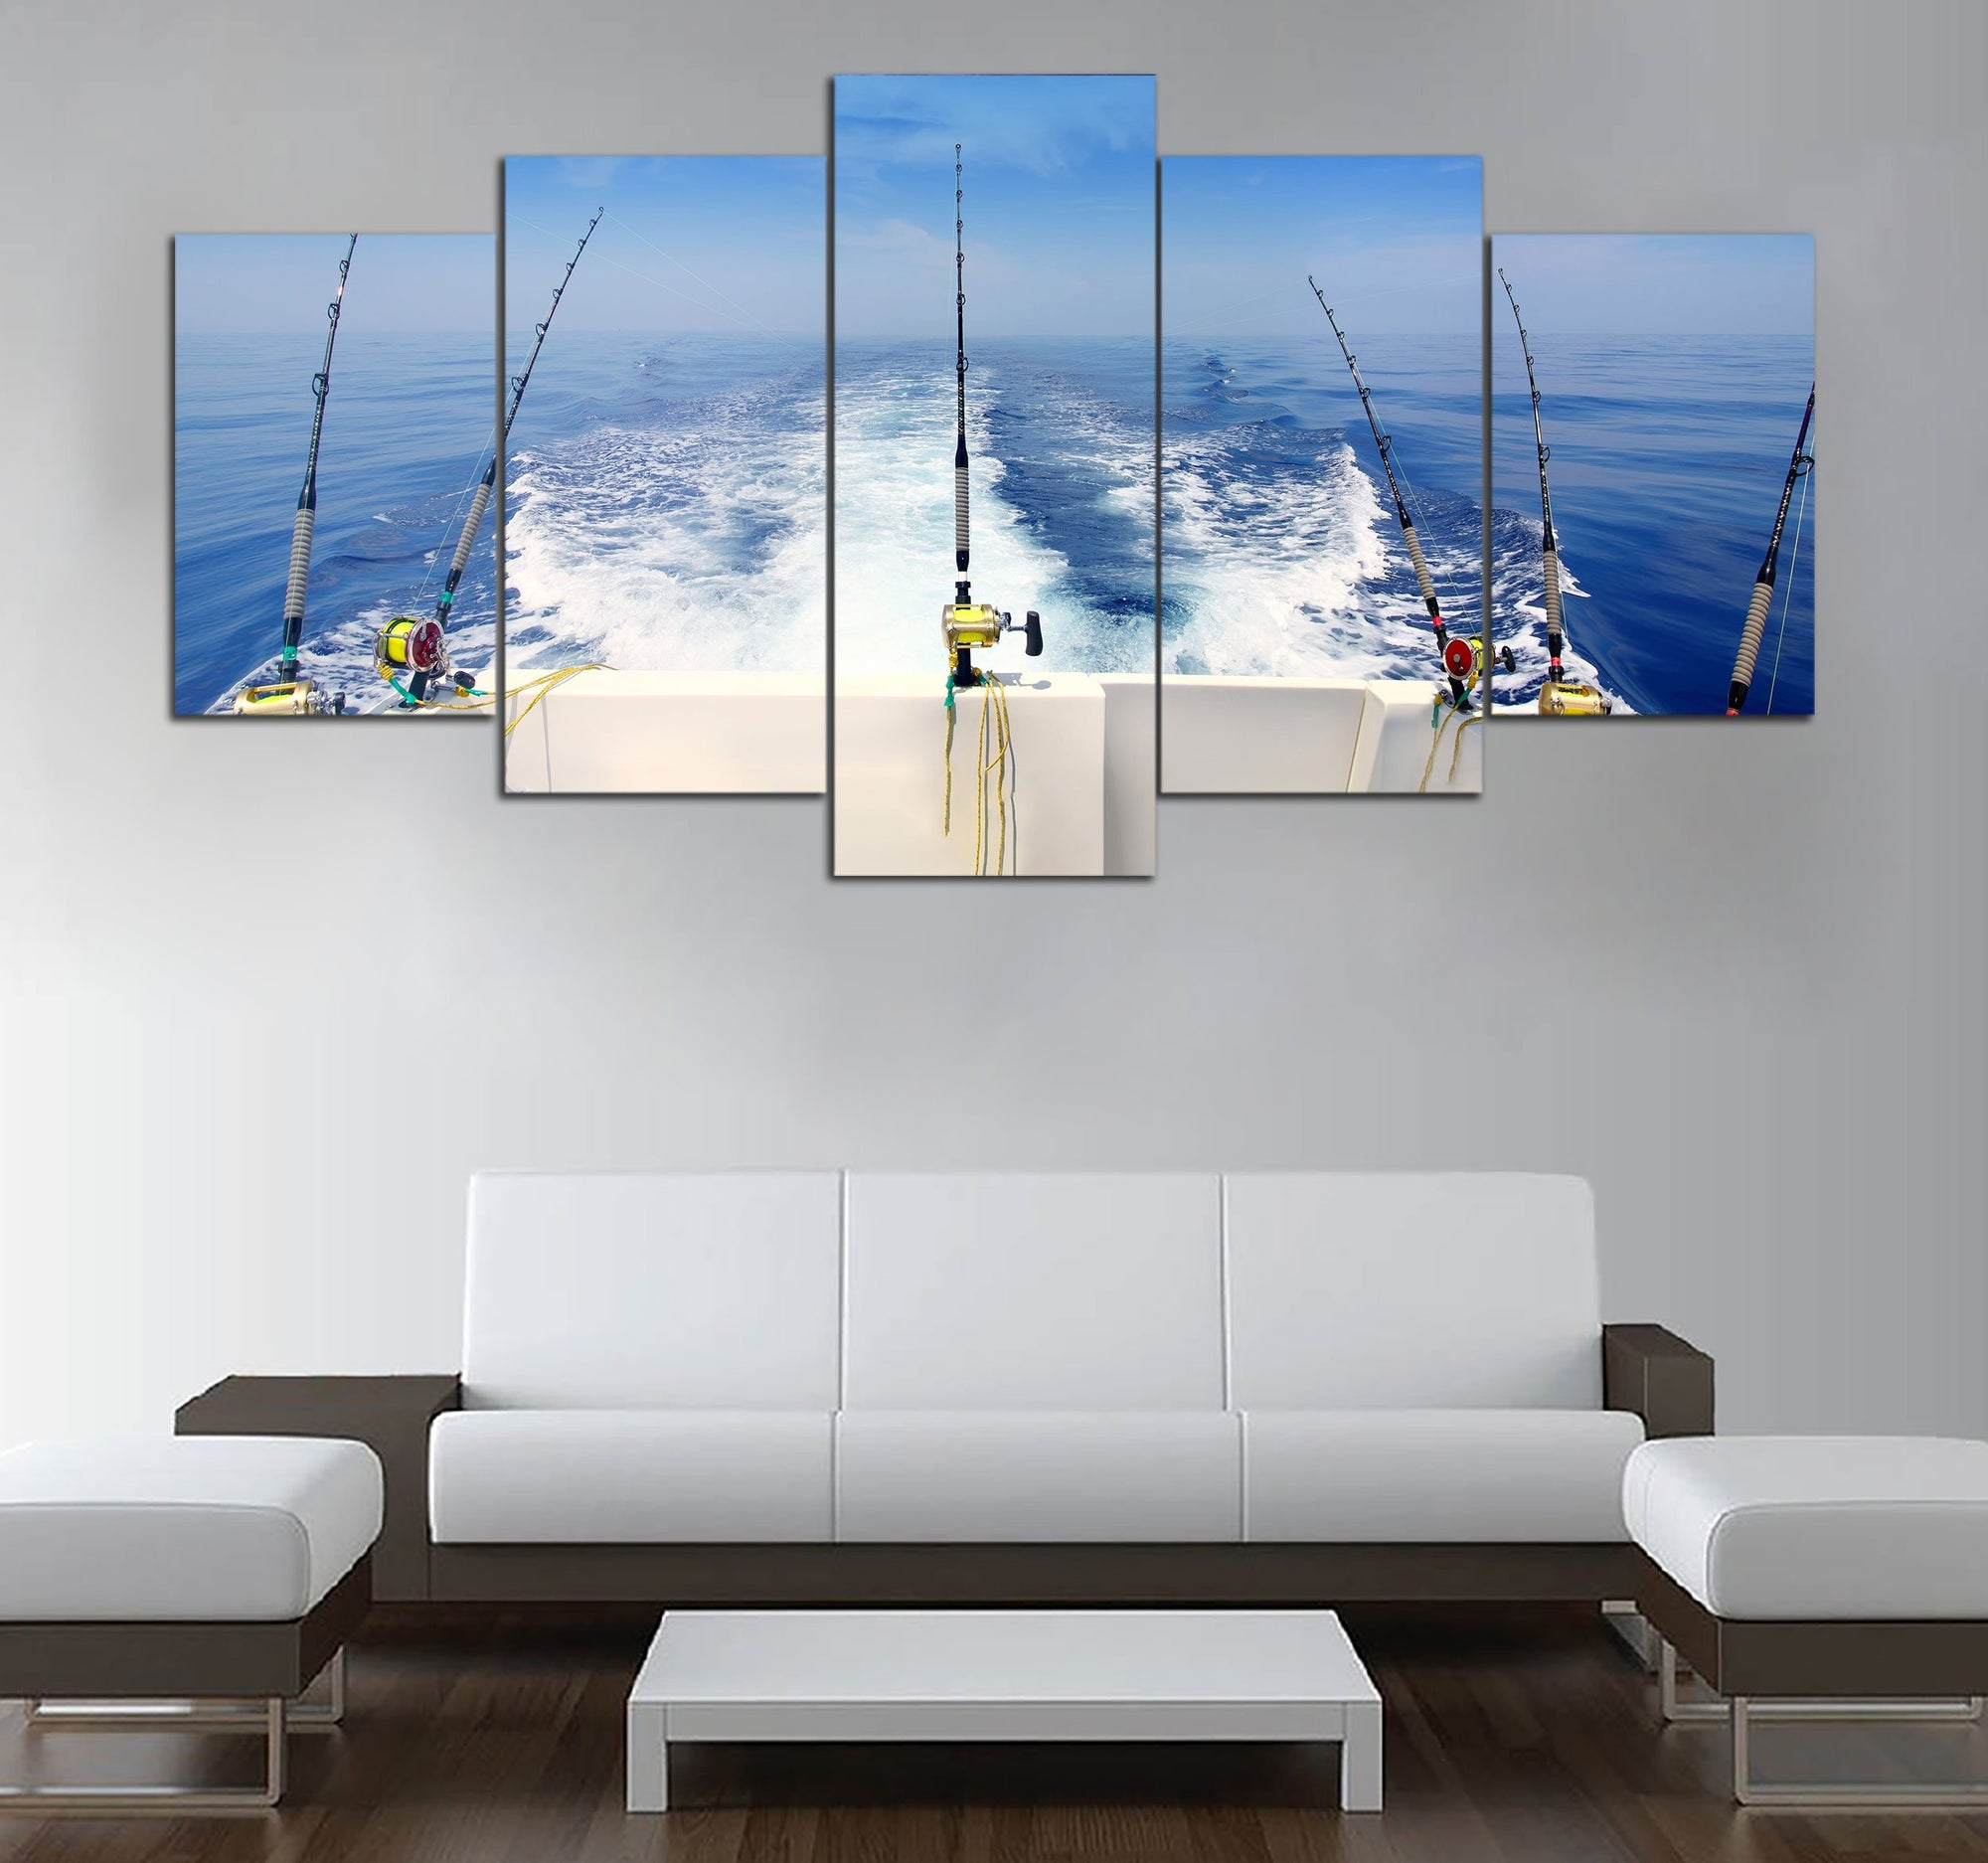 5-piece Sea Fishing Printed Canvas Wall Art